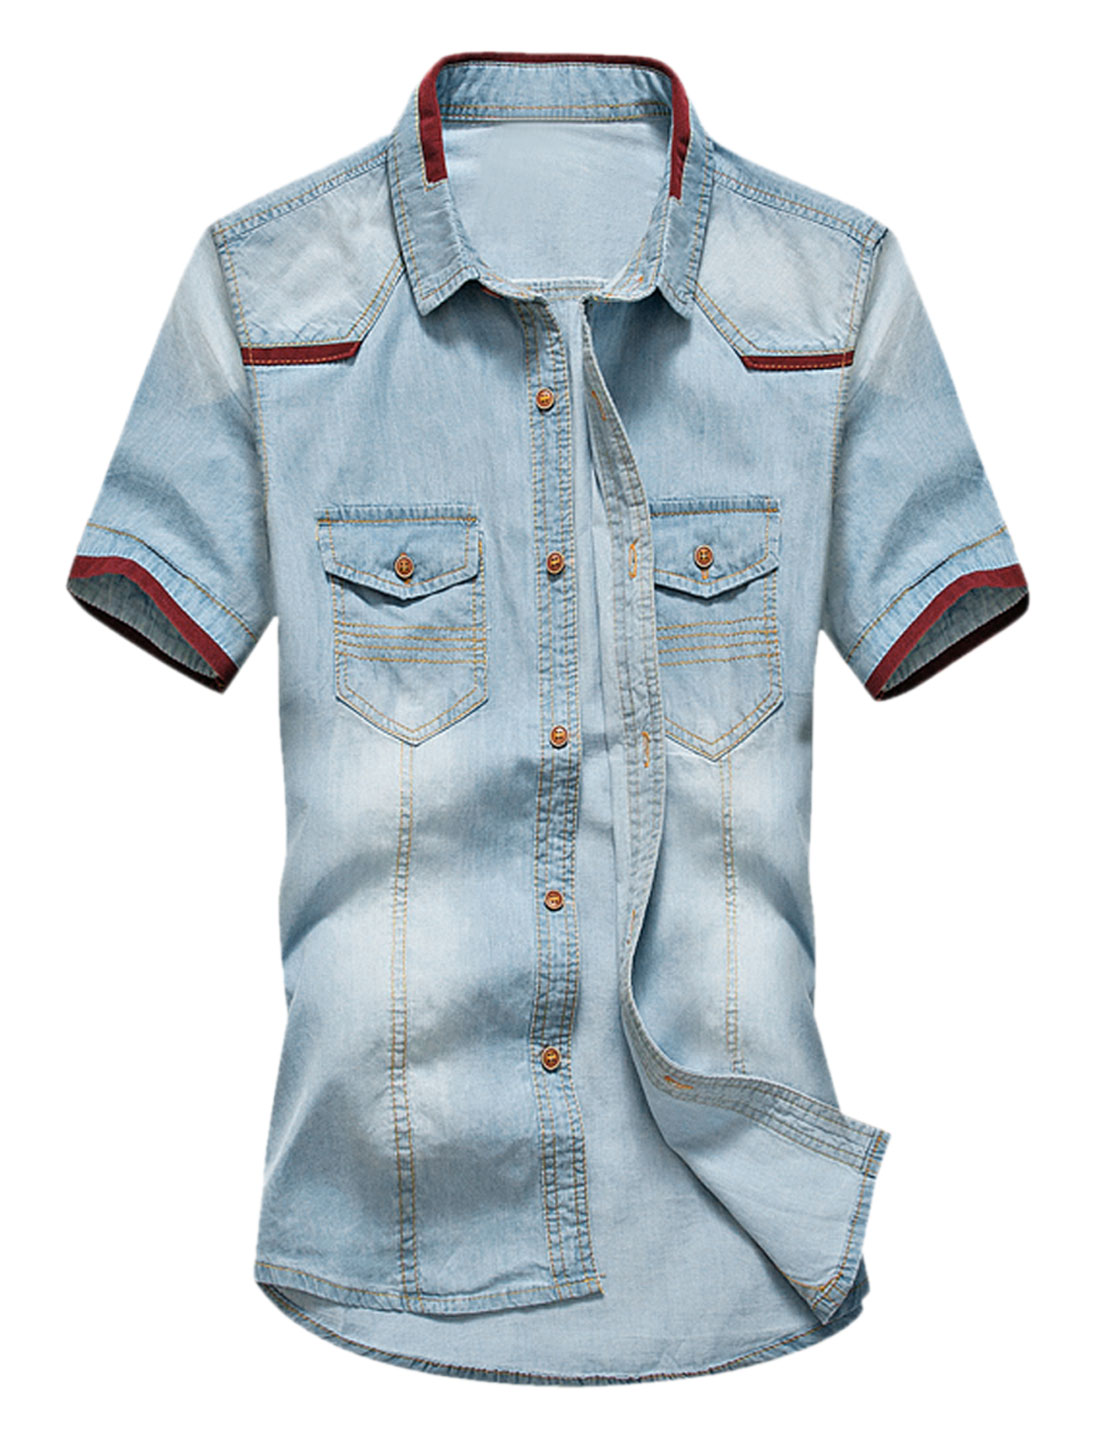 Men Button Closed Short Sleeves Panel Denim Shirt Sky Blue Burgundy M